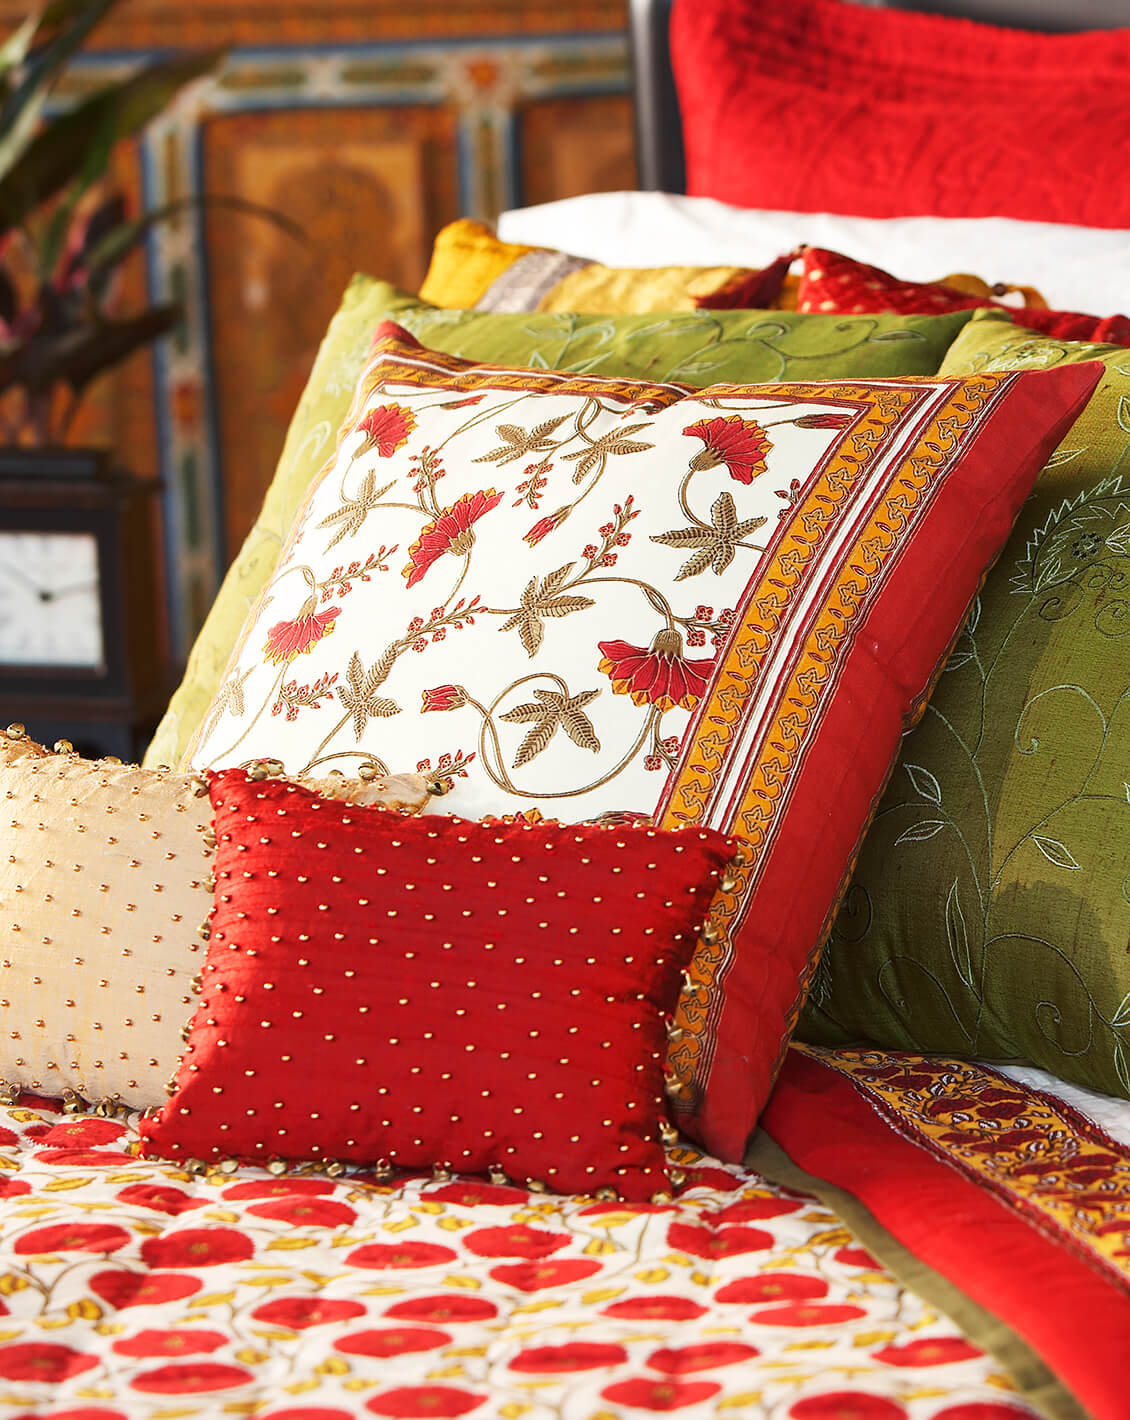 Morrocan bedding great interior design photography